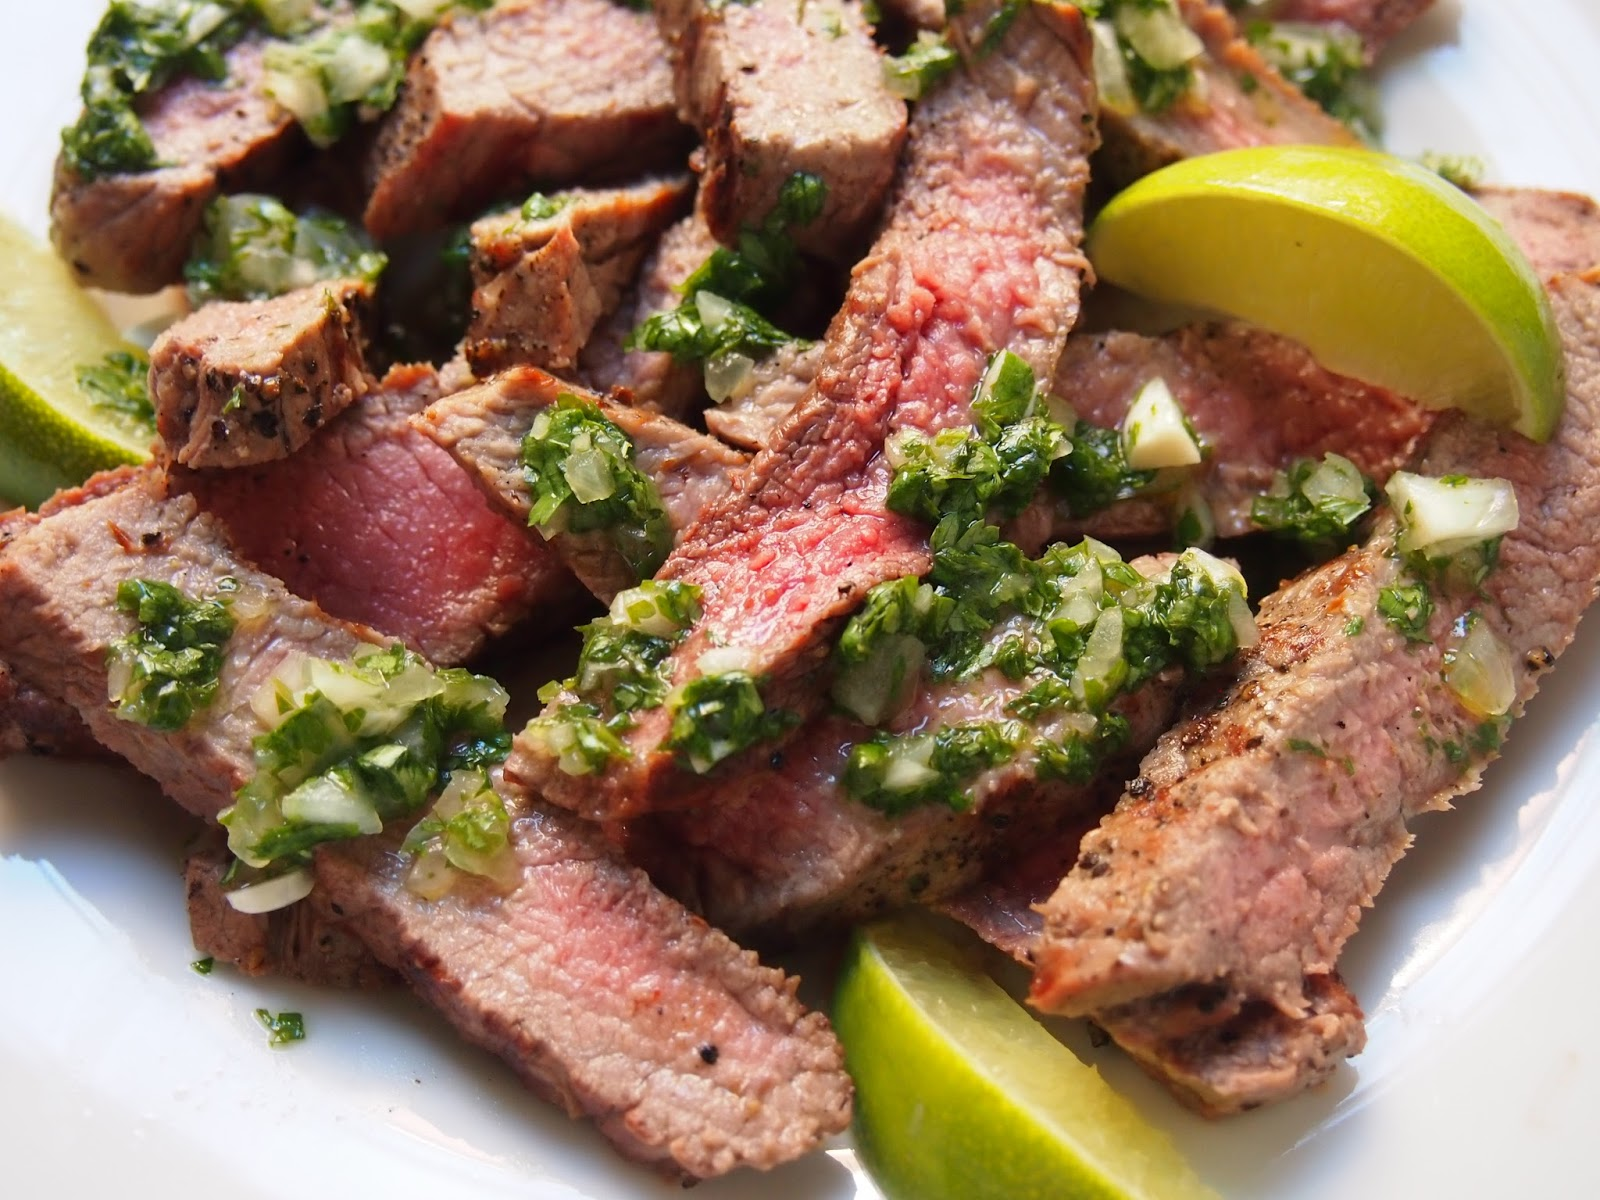 Cooking with Kale: Grilled Steak & Chimichurri